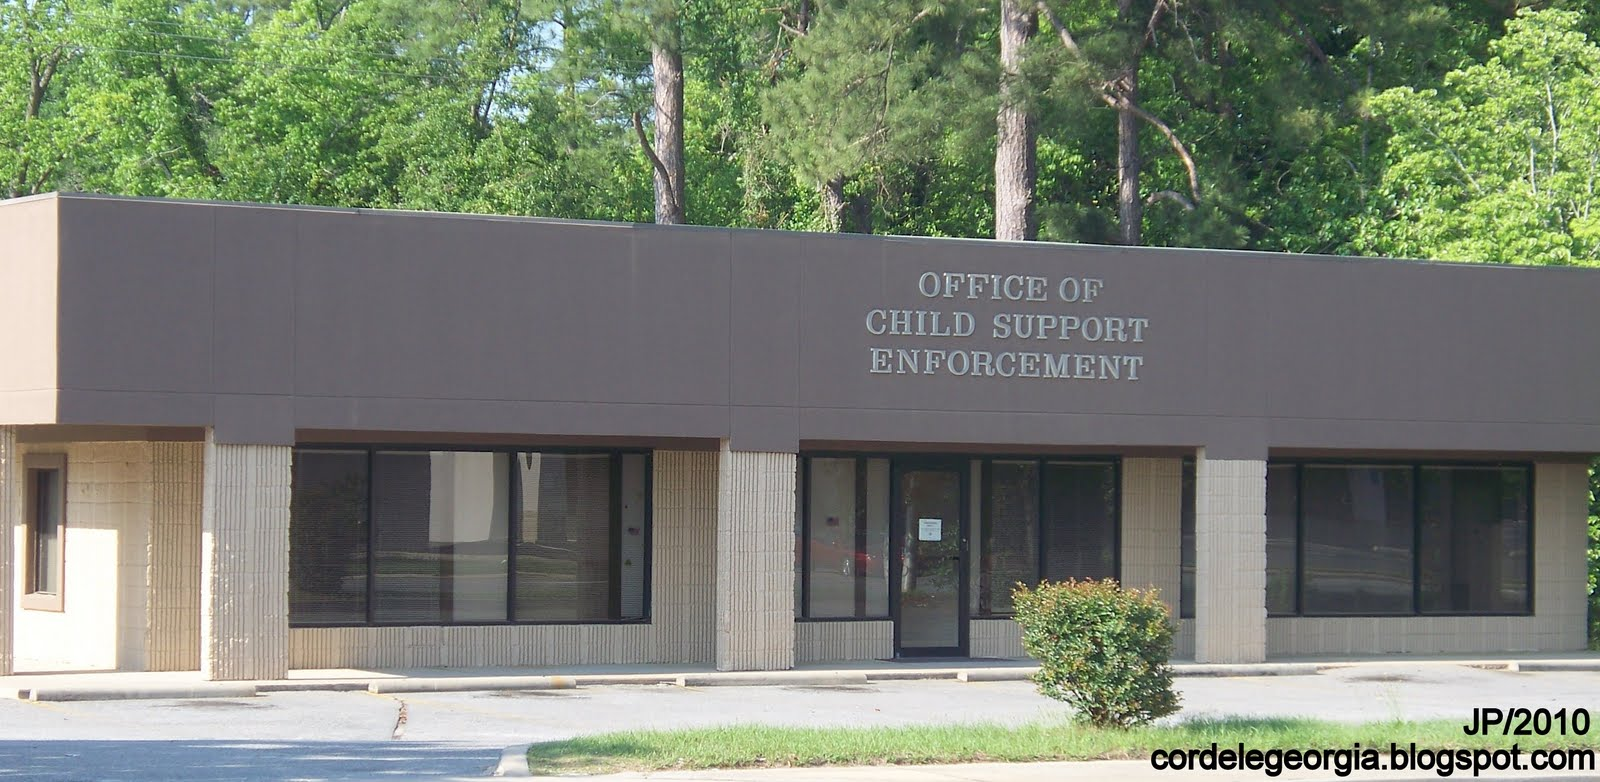 CHILD SUPPORT CORDELE GEORGIA E 16th Ave, Office Of Child Support  Enforcement, Cordele Georgia, Crisp County GA.